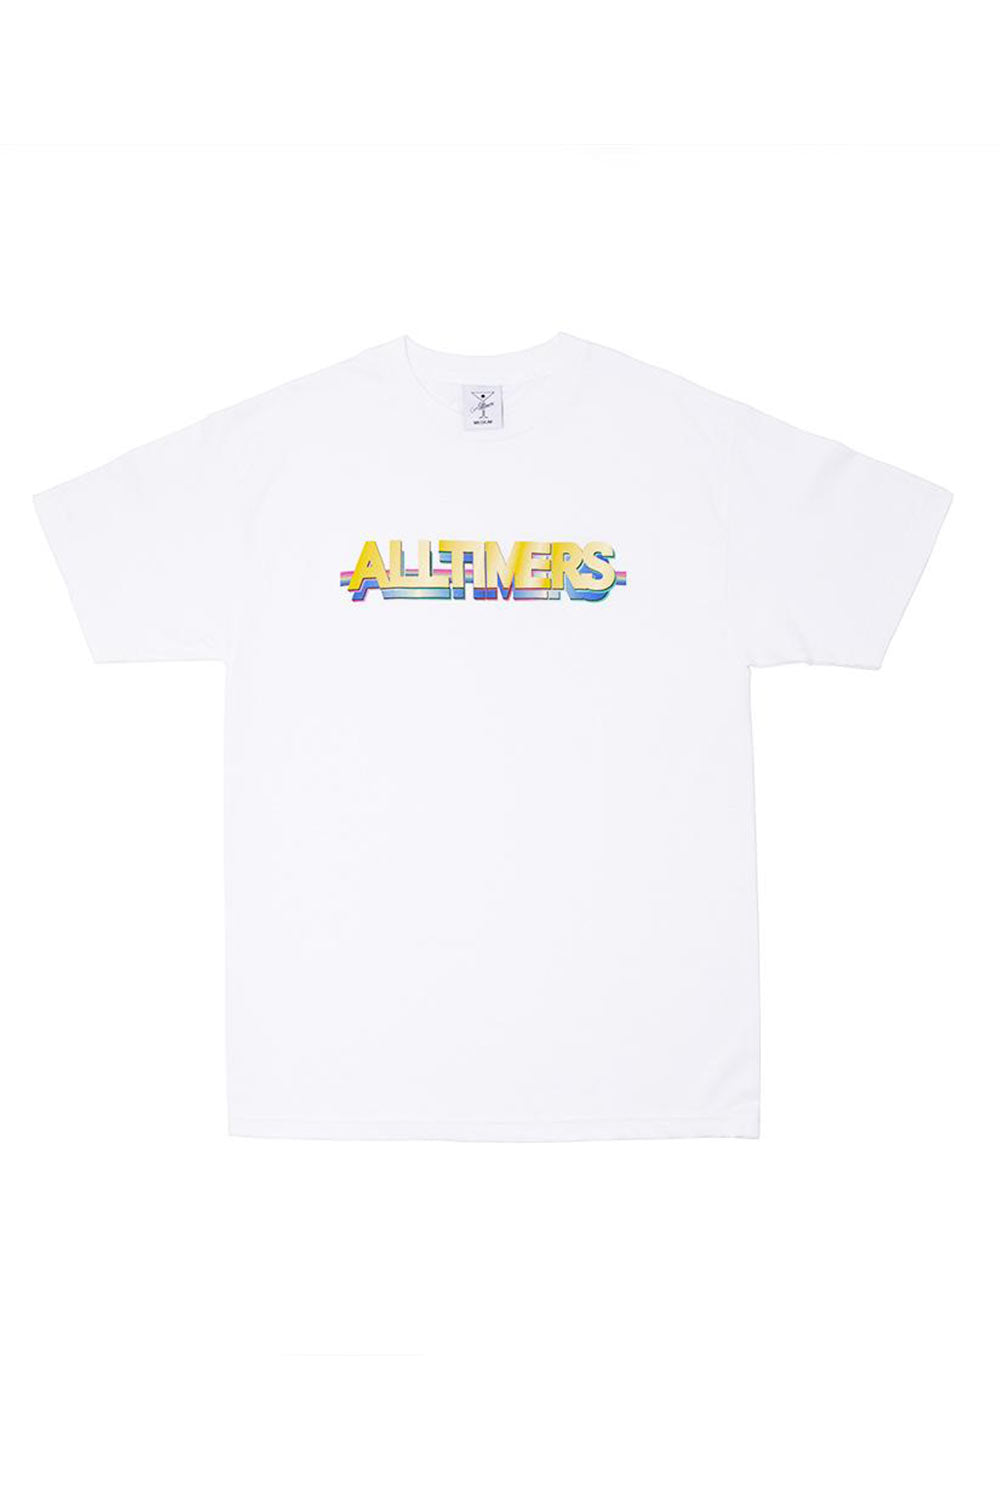 Alltimers Feature Tee - White